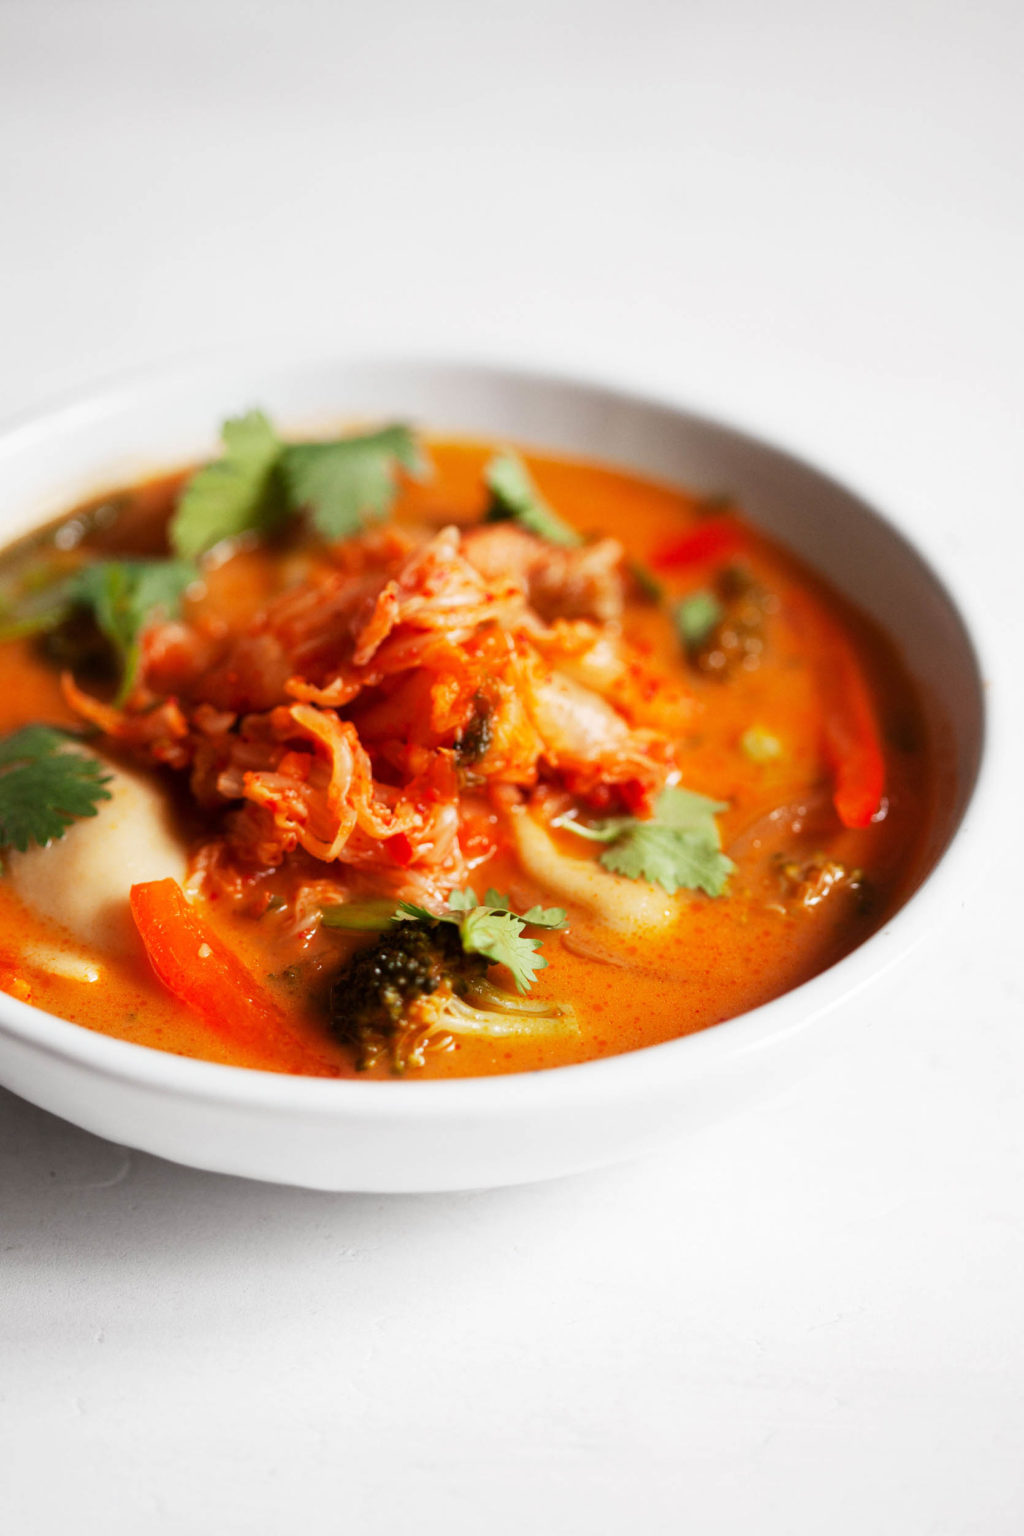 An angled photograph of a vegan red curry soup, made from plump plant-based dumplings and topped with a mound of kimchi.